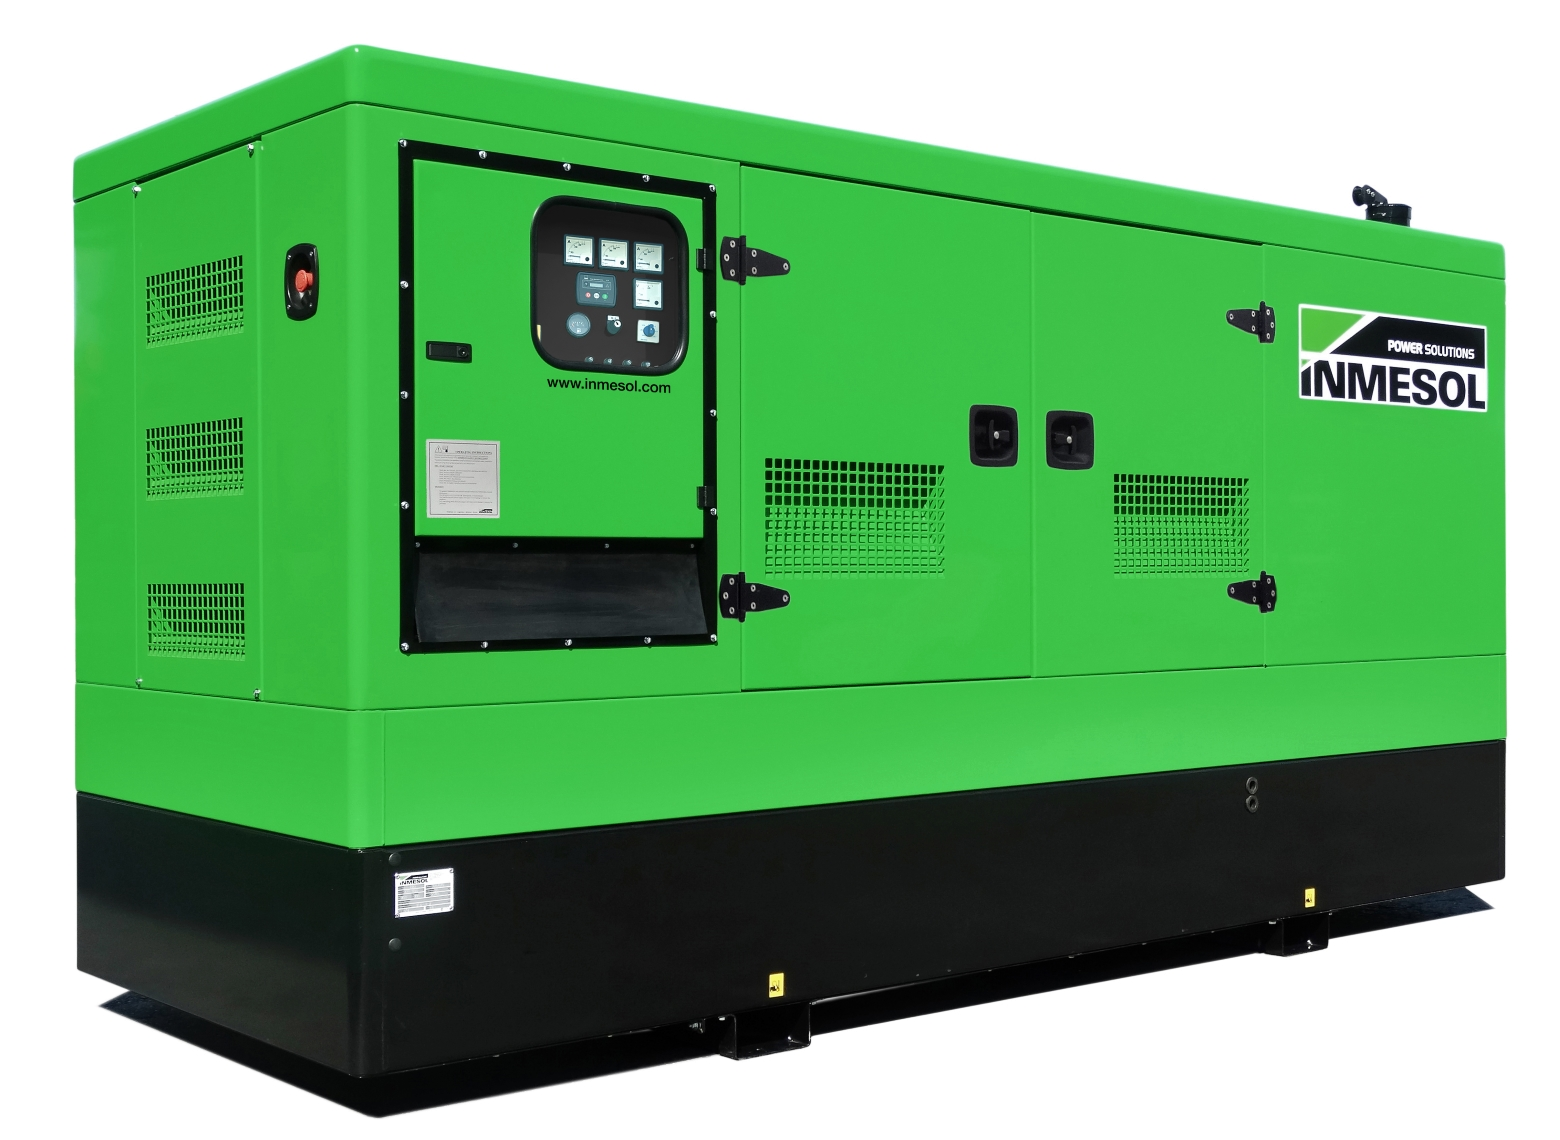 Generator with manual control panel.II-255 - FPT - N67TE2A(60HZ) - 1.800 R.P.M. | 60 Hz